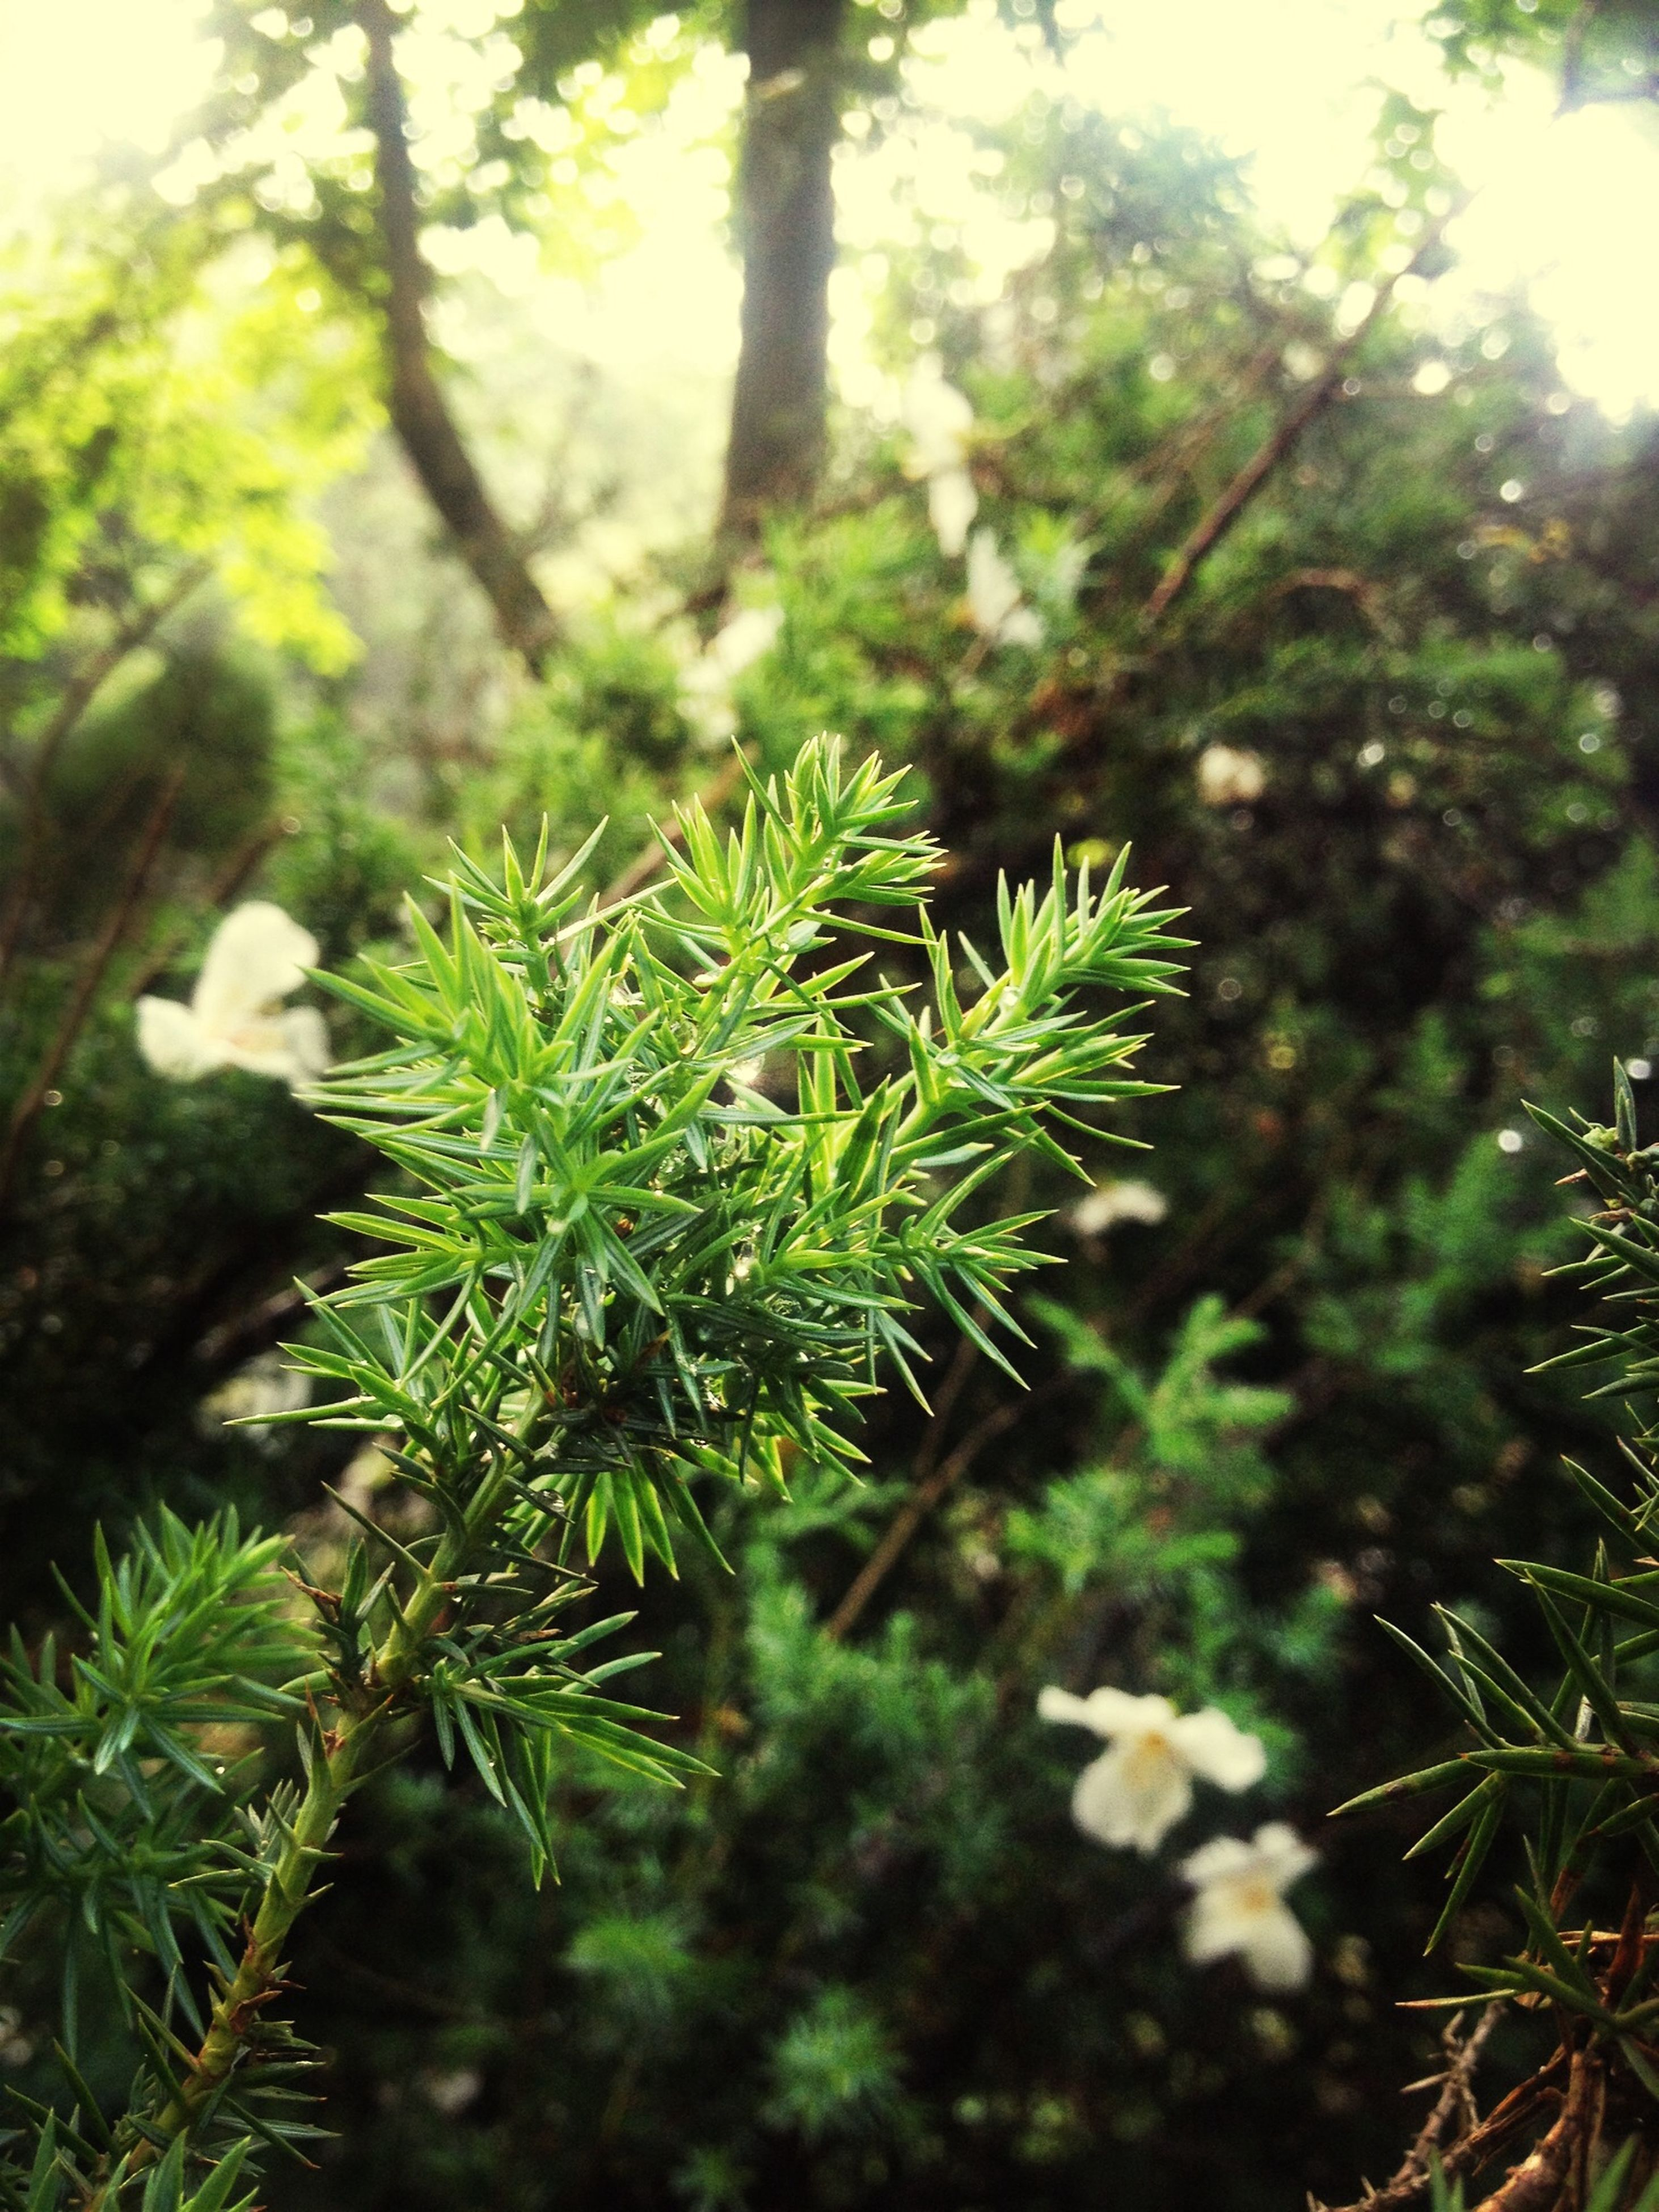 growth, tree, green color, nature, leaf, tranquility, plant, branch, focus on foreground, forest, close-up, beauty in nature, growing, sunlight, selective focus, green, day, outdoors, no people, lush foliage